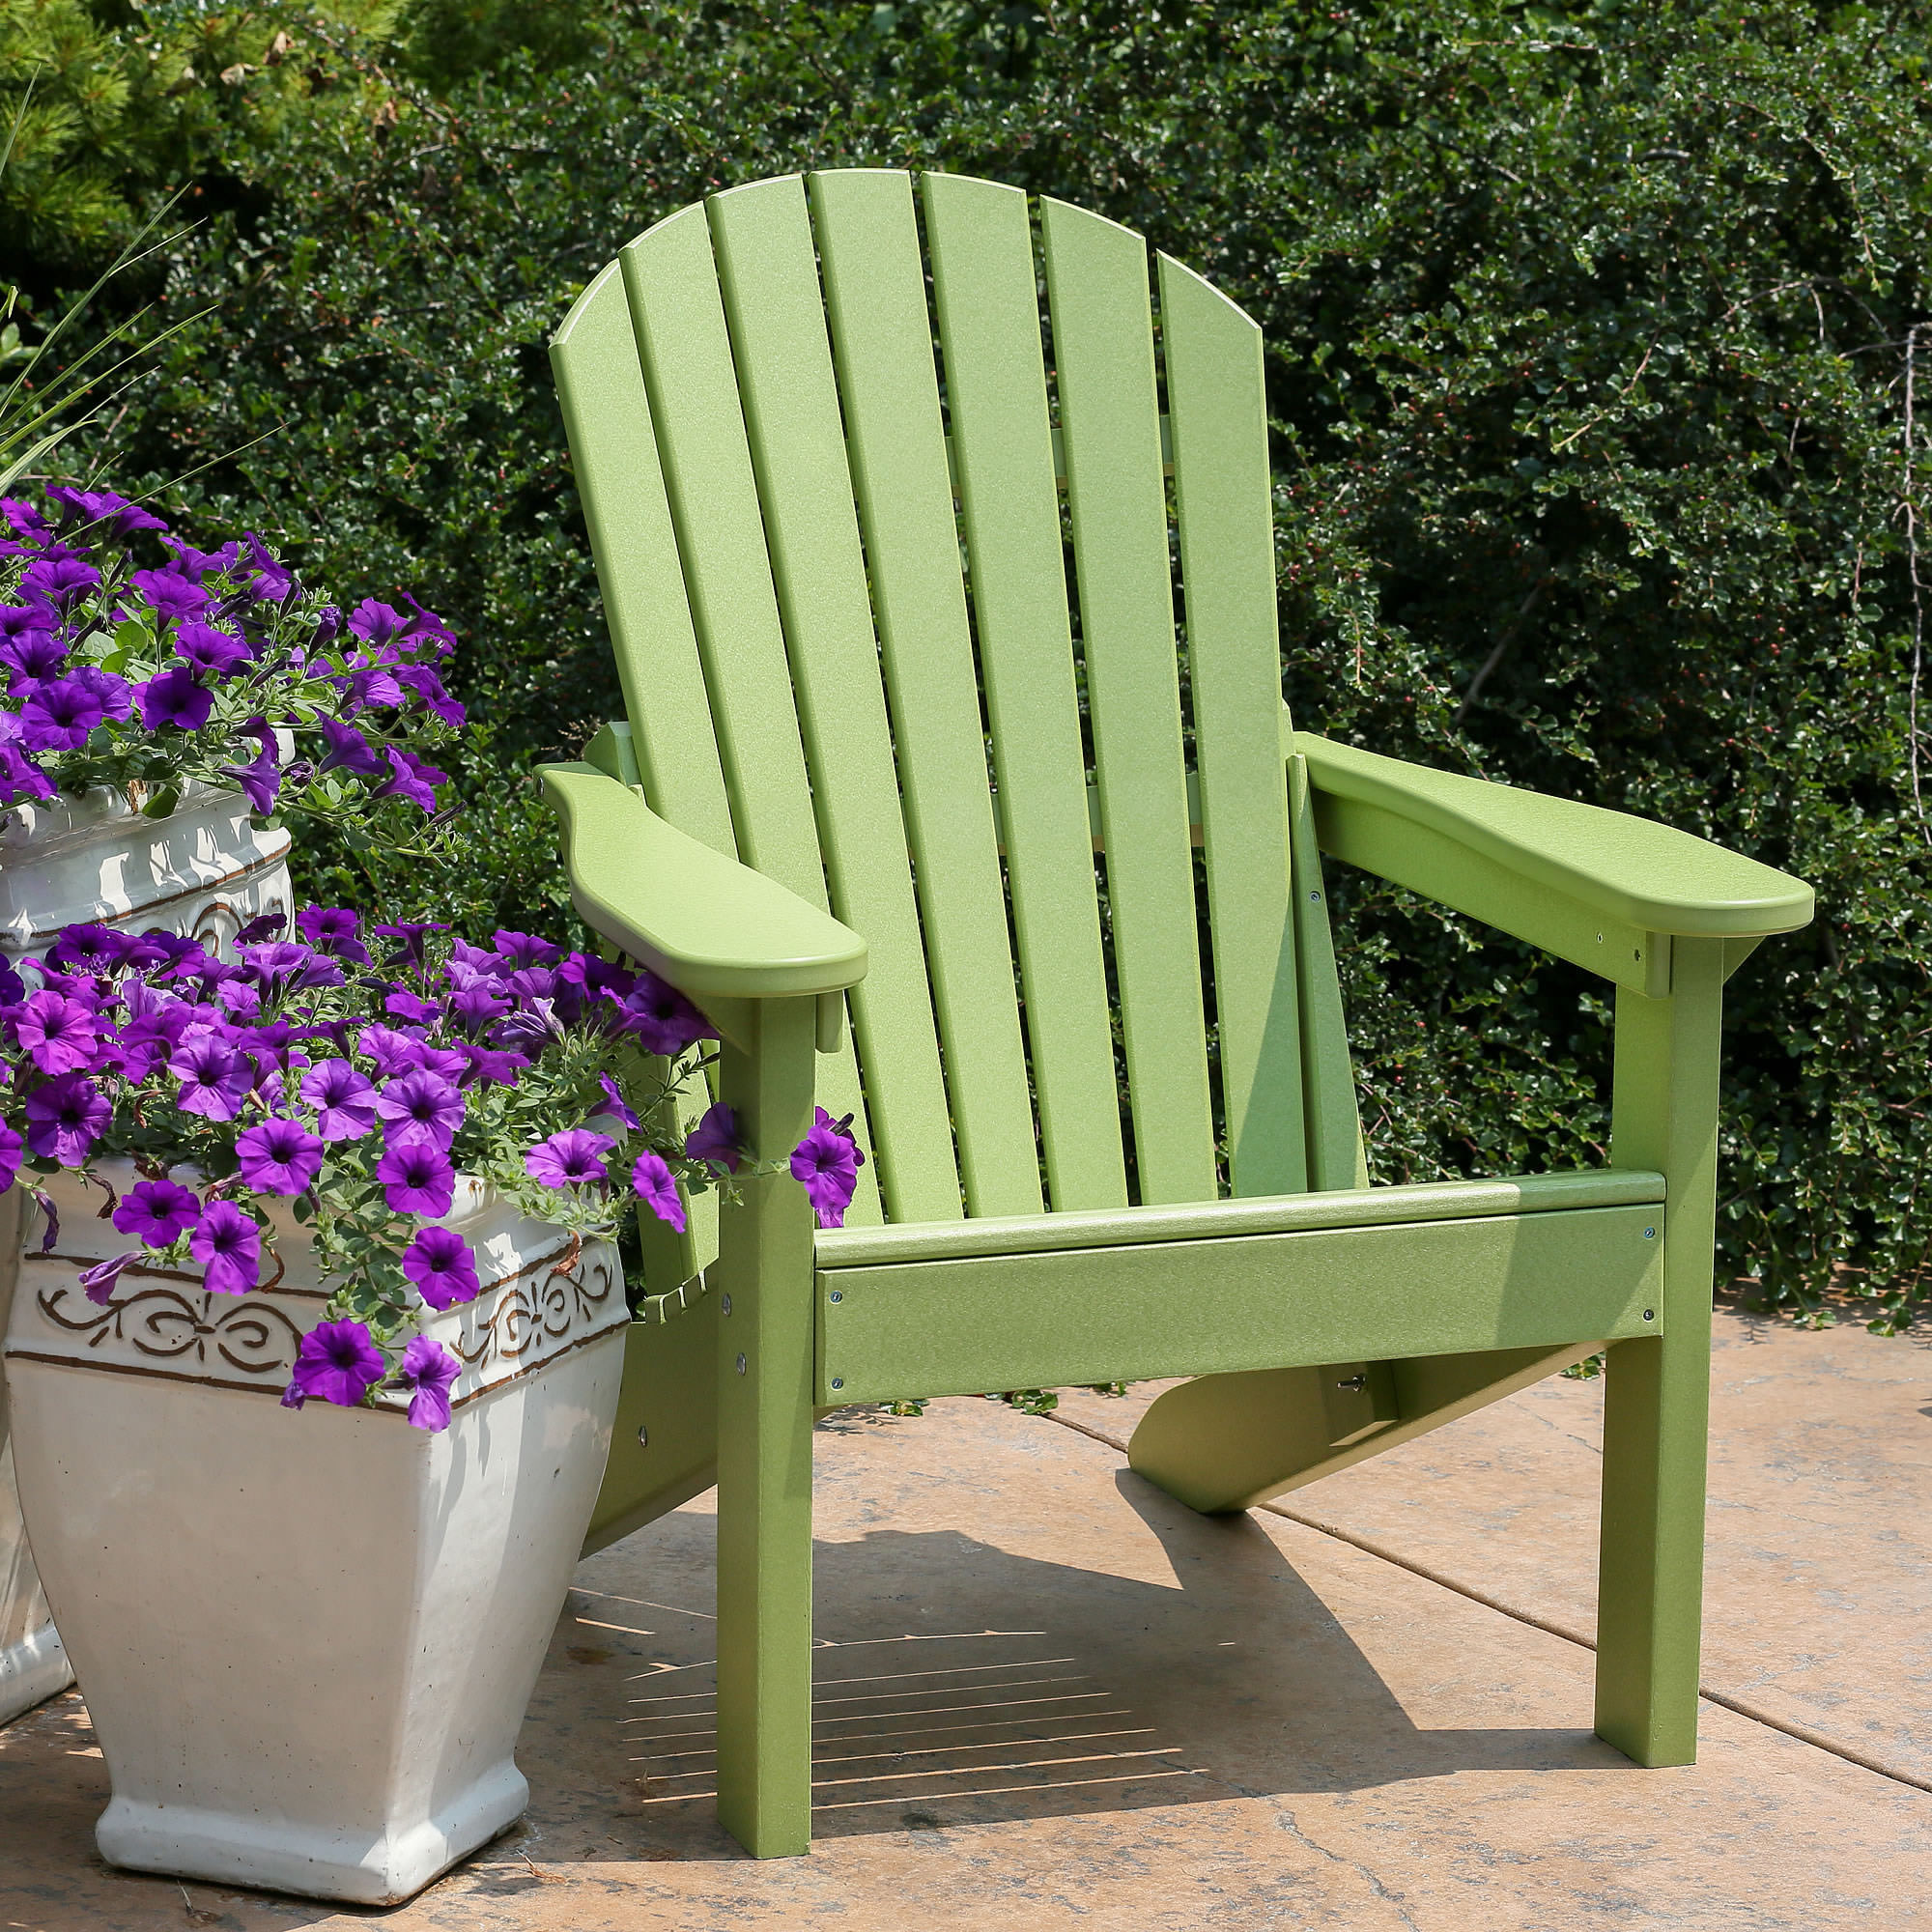 Chairs Berlin berlin gardens tropical adirondack chair berlin gardens adirondack